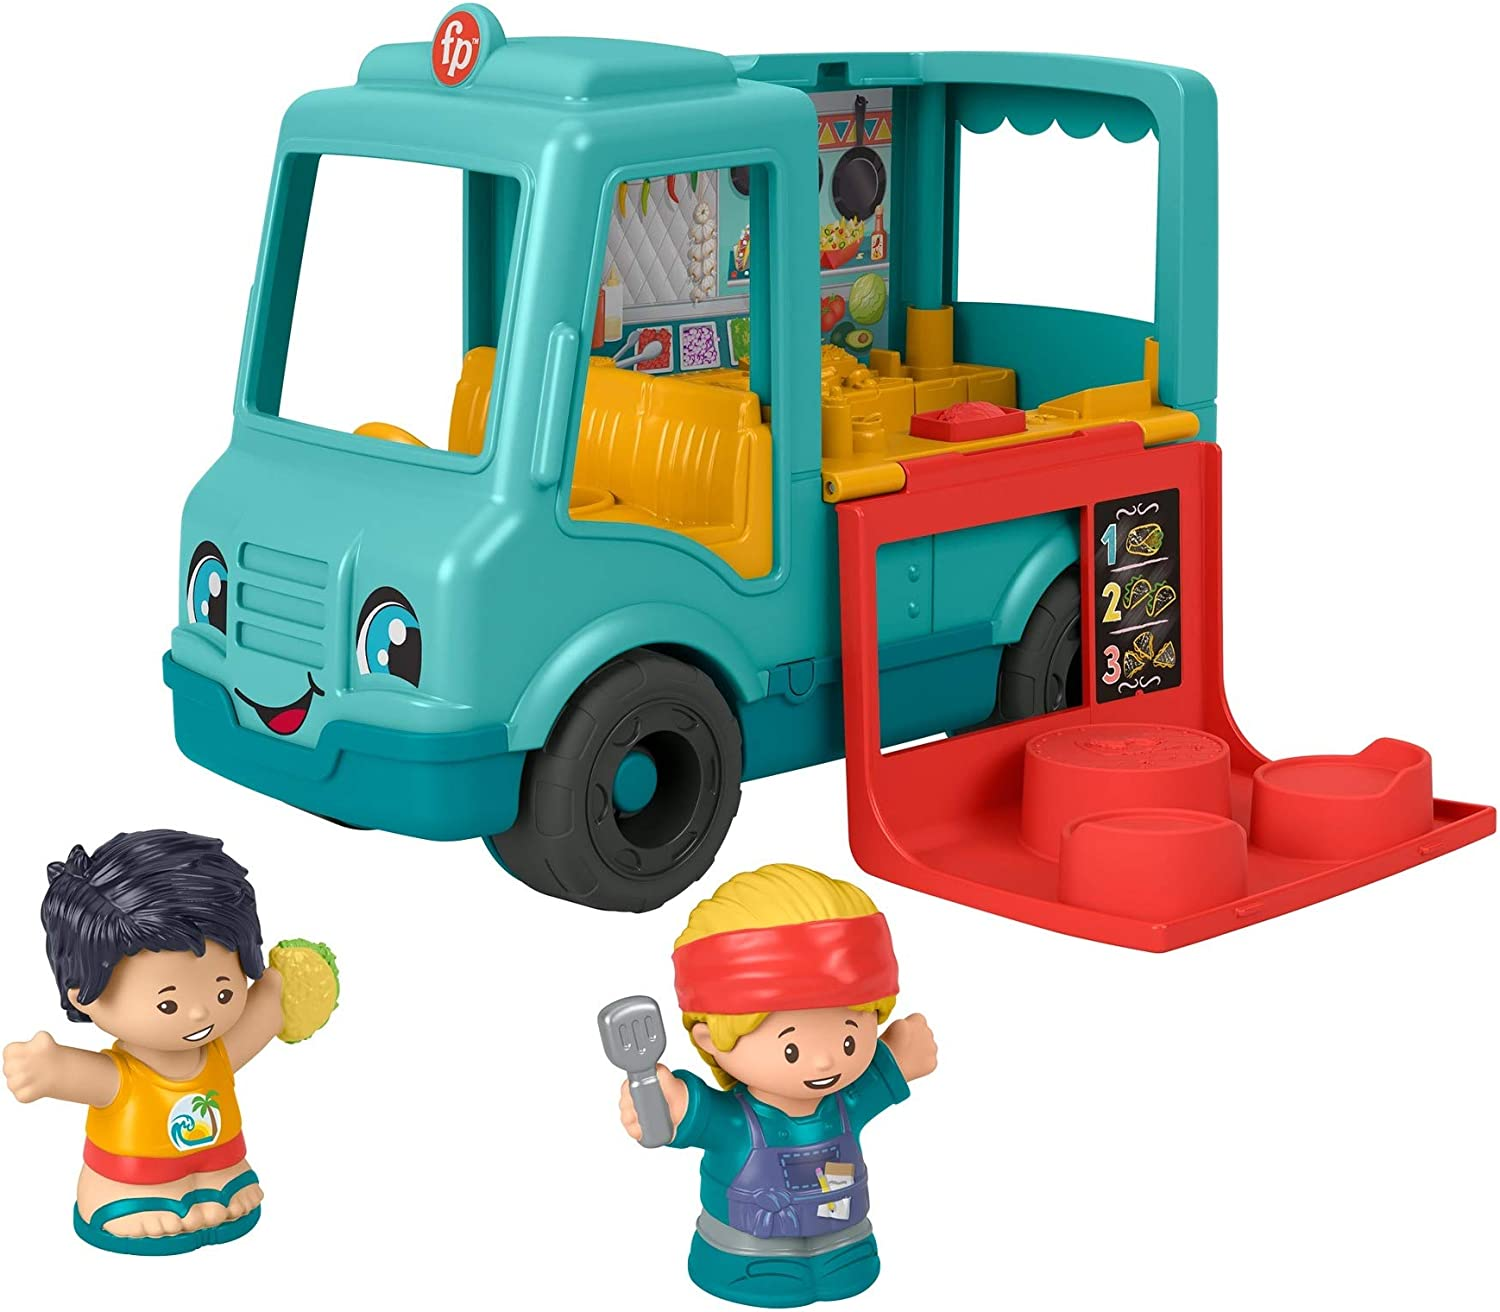 Fisher-Price Little People Serve It Up Food Truck, Push-Along Musical Toy Vehicle with Figures for Toddlers and Preschool Kids Ages 1-5 Years